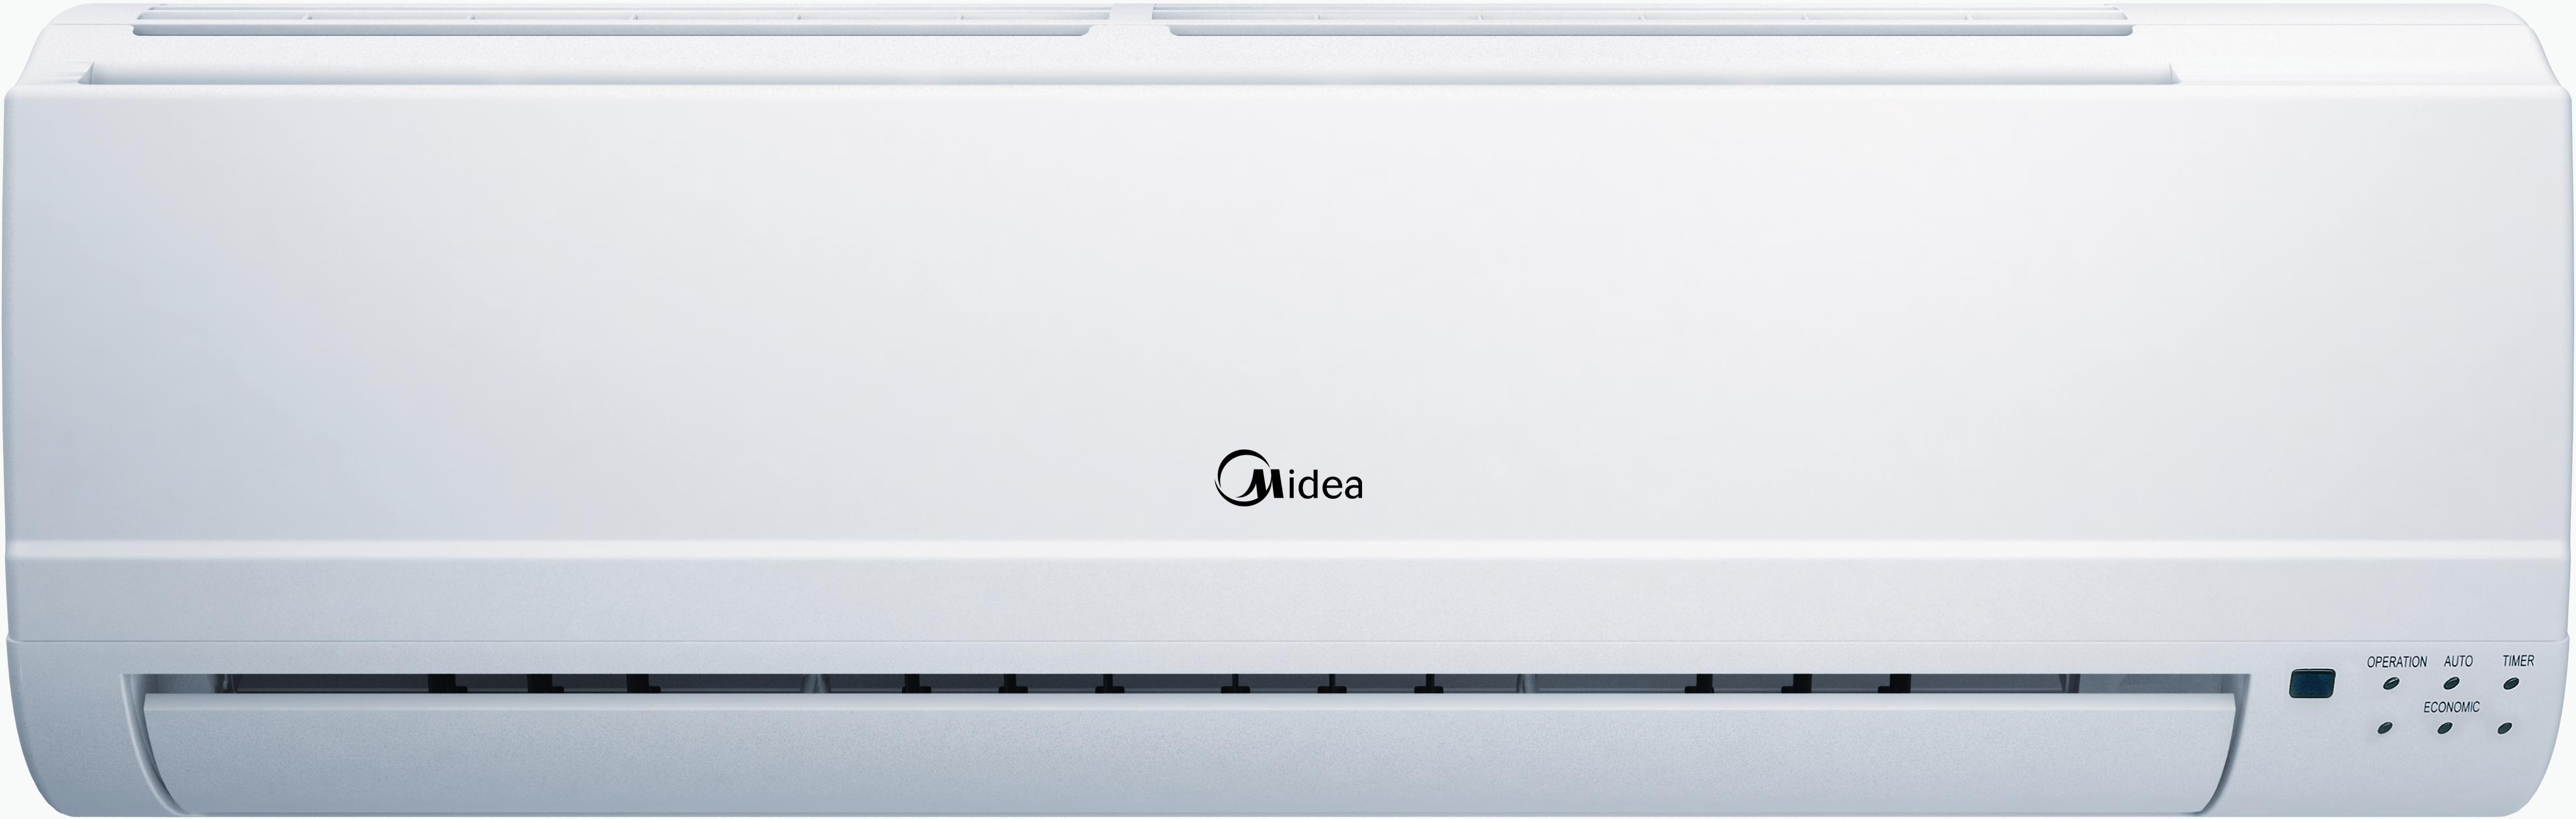 MIDEA GLORY ECO MSG